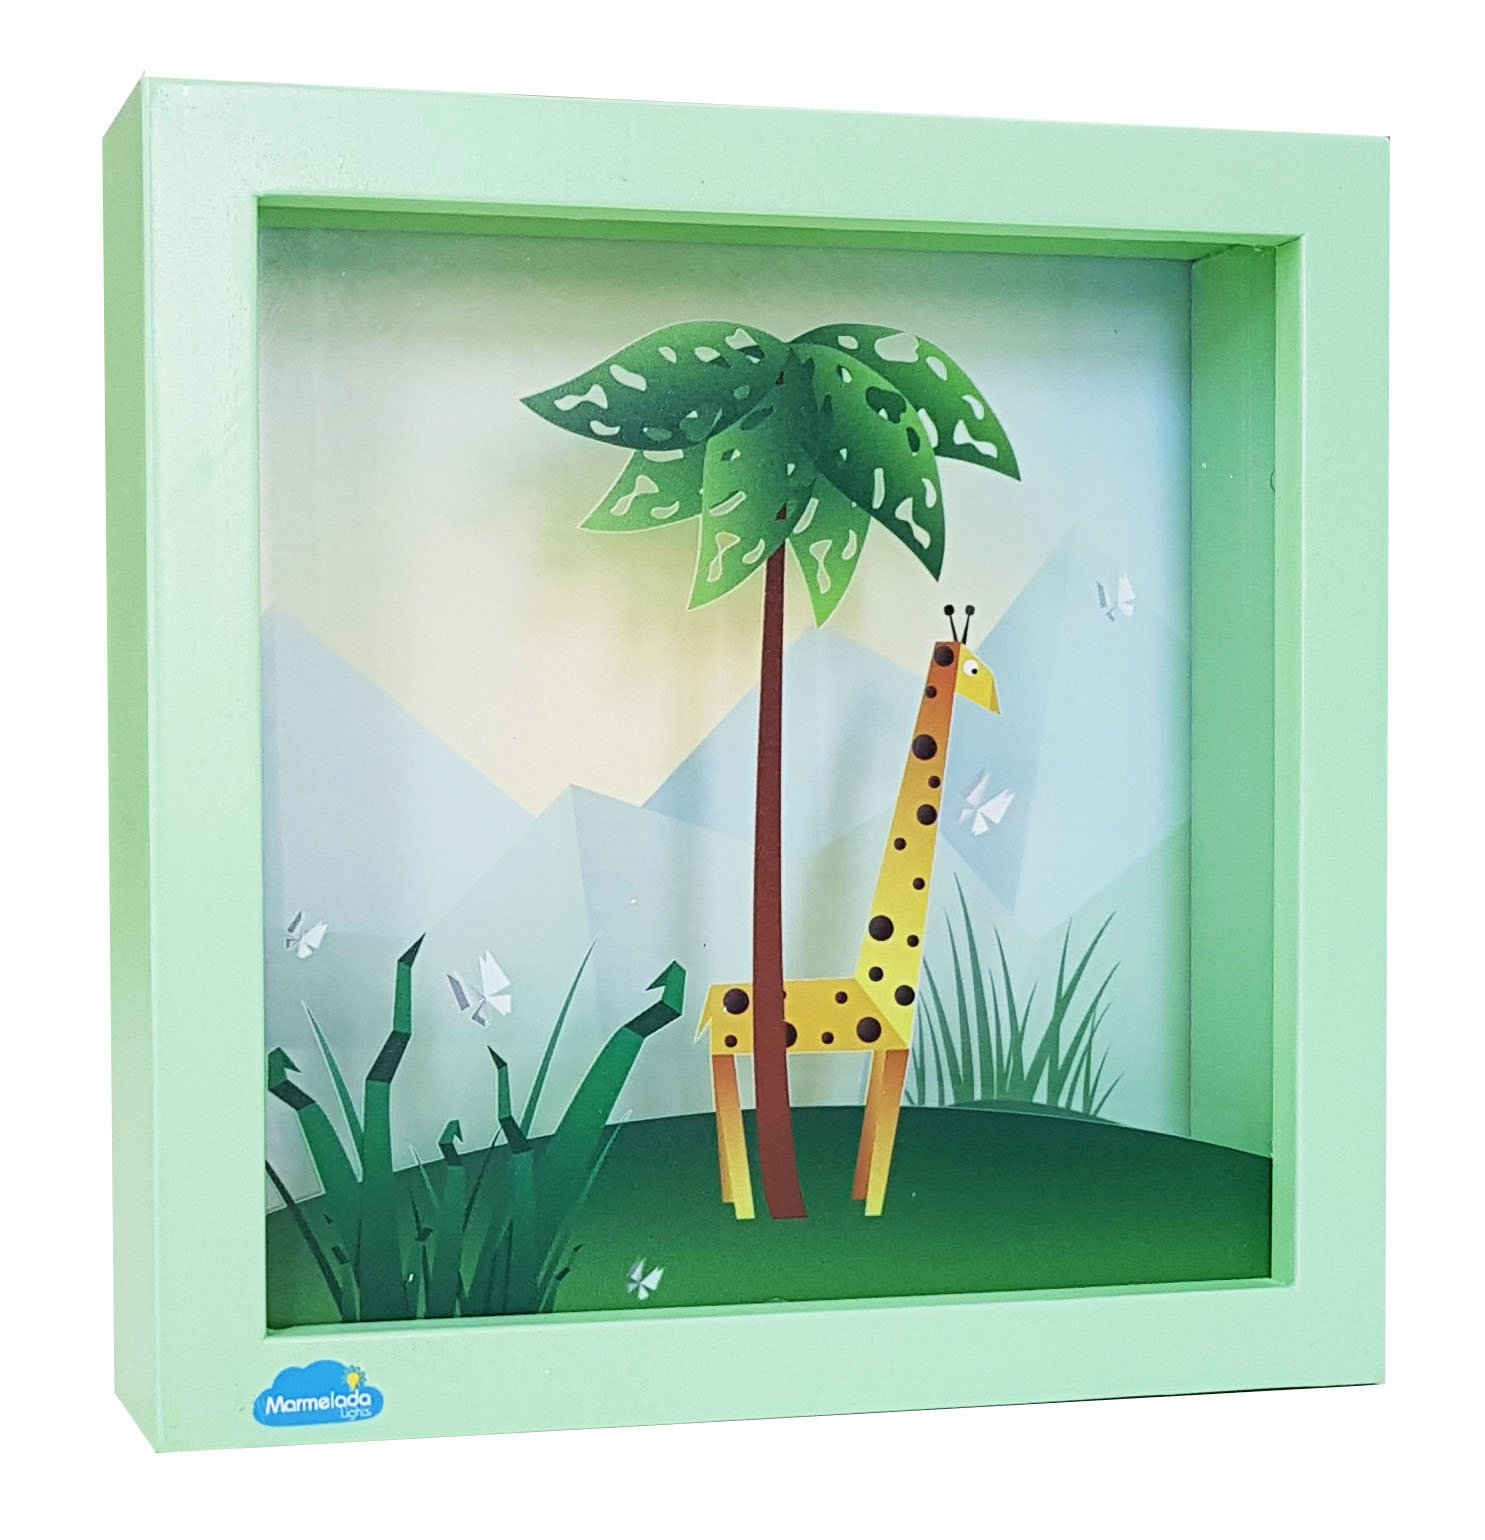 Night Light for Kids, Marmelada Lights, 3D Story in a Frame Series African Giraffe, LED Bedside Kids, Baby, Children Night Lamp Bookshelf, Tabletop, or Wall Hanging, Battery operated 2 months runtime.